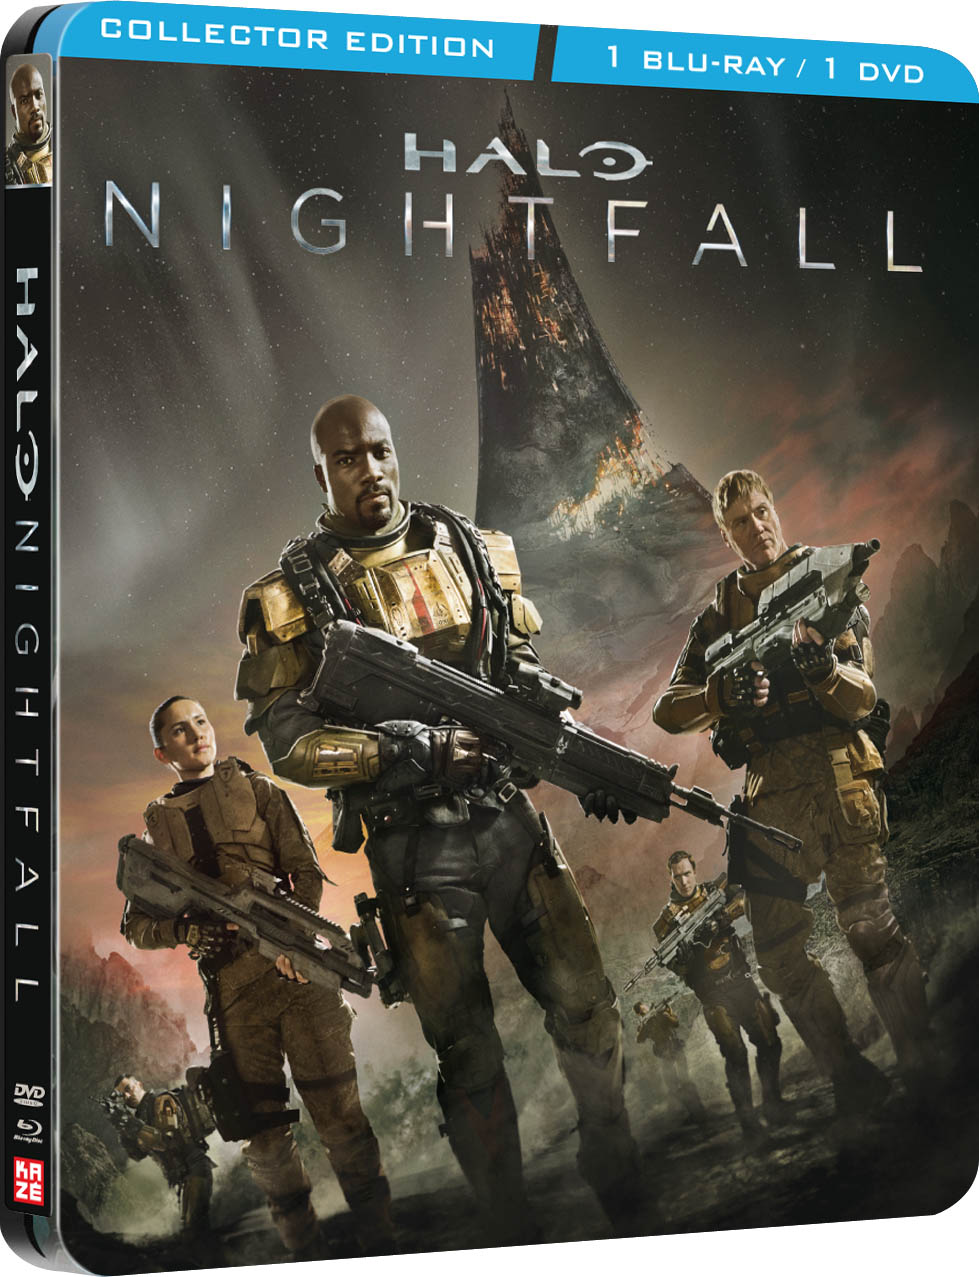 halo nightfall collector's edition steelbook